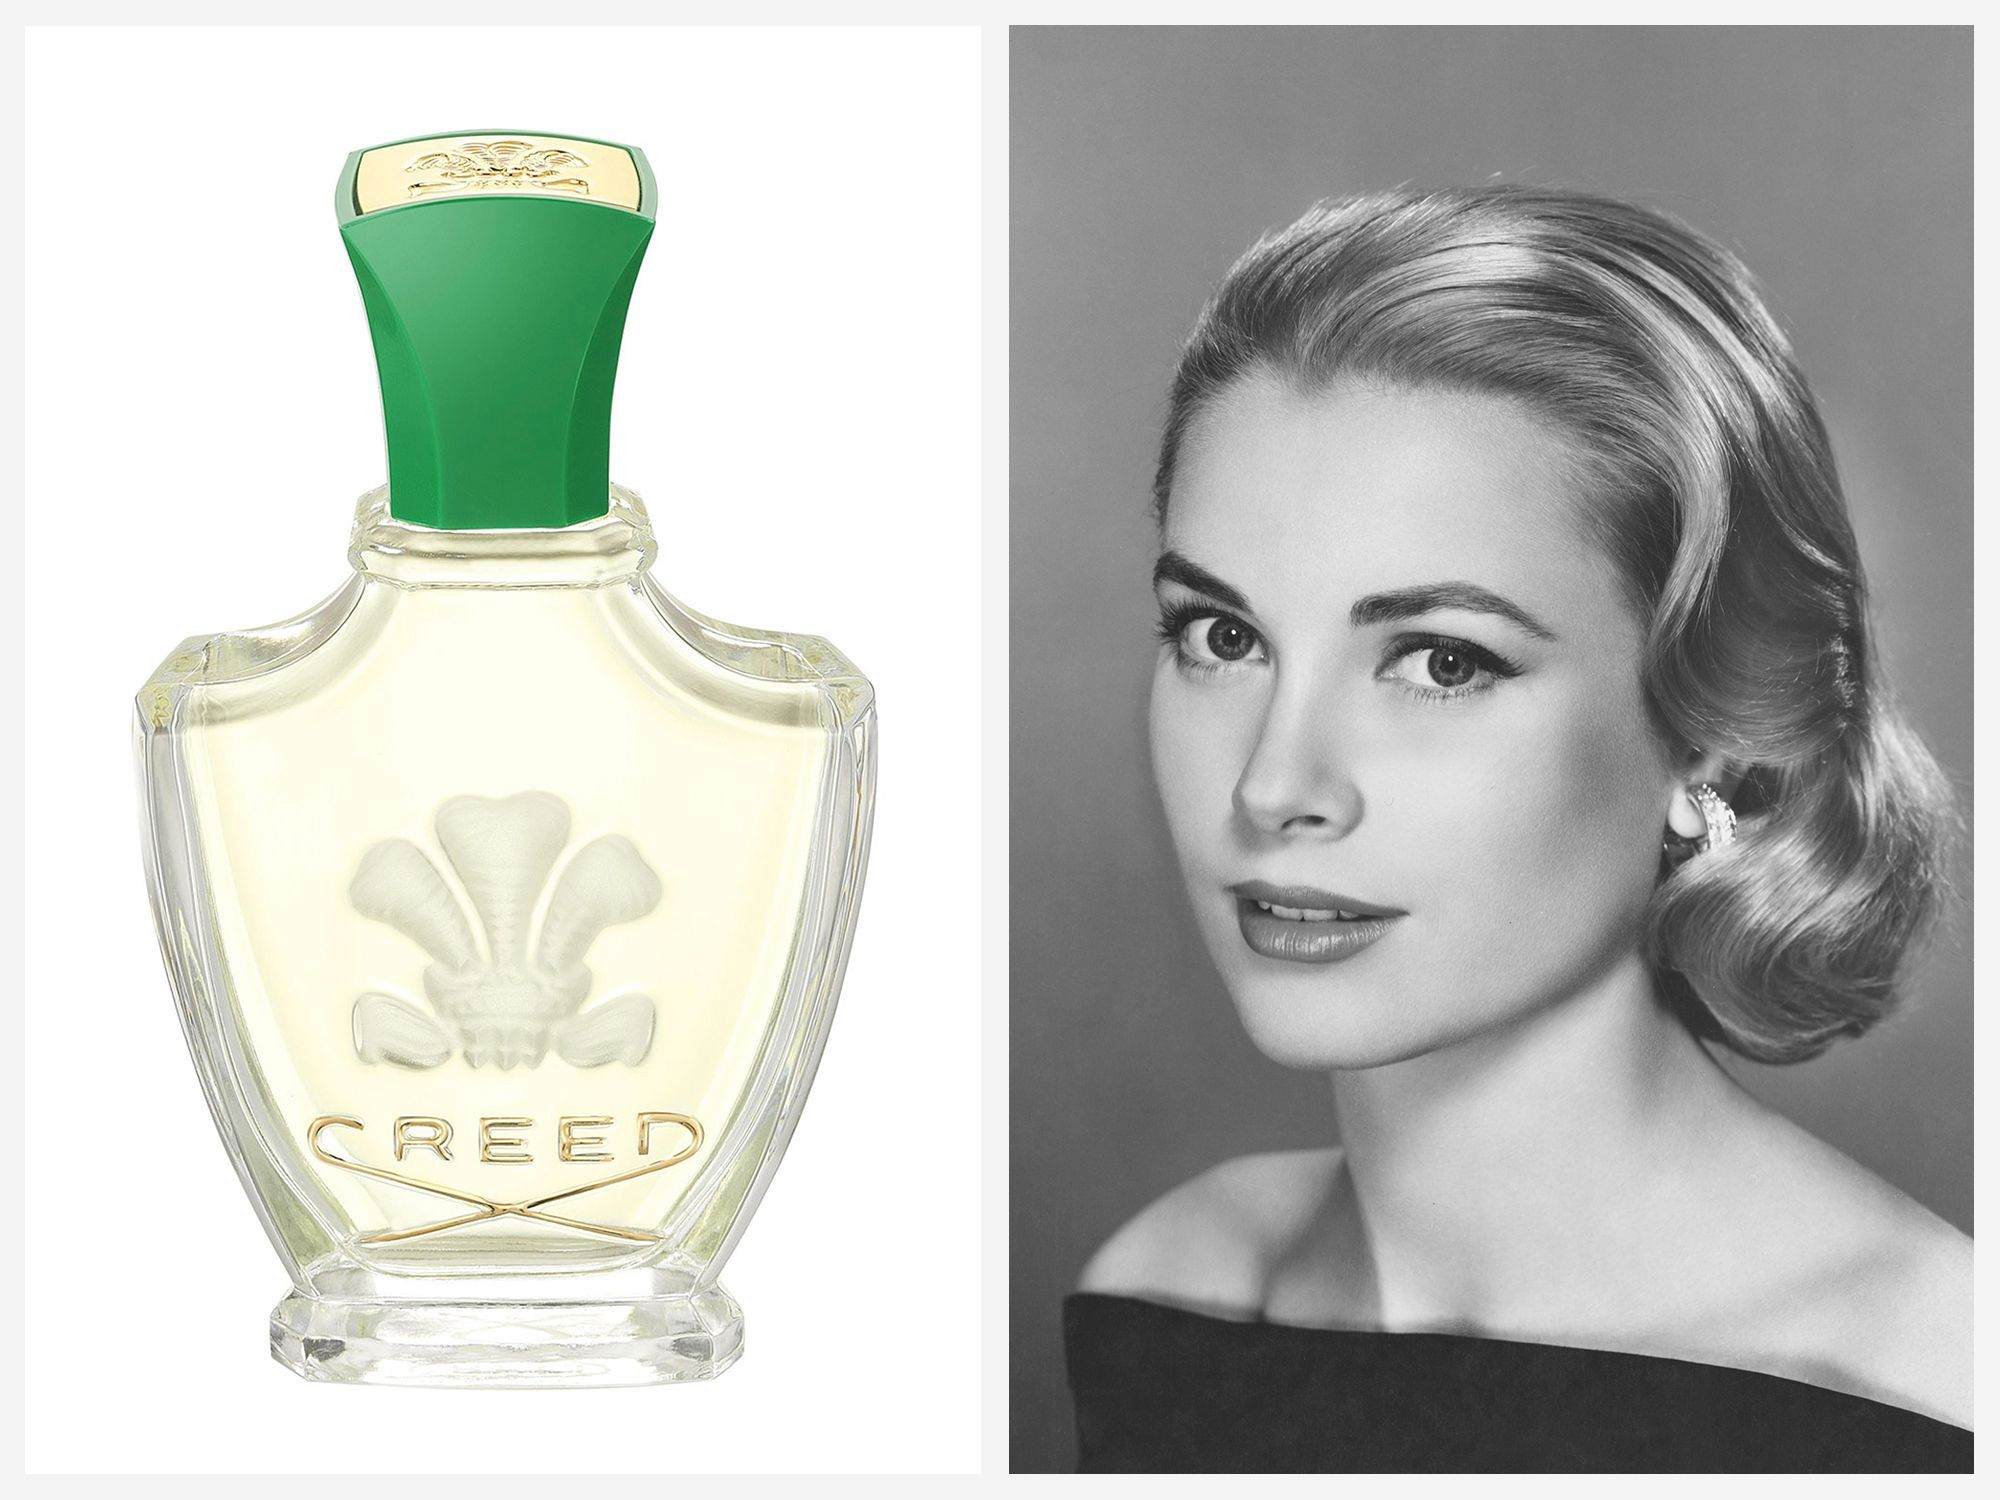 Princess Grace famously received Creed Fleurissimo from her soon-to-be-husband Prince Raniere as a pre-wedding gift.